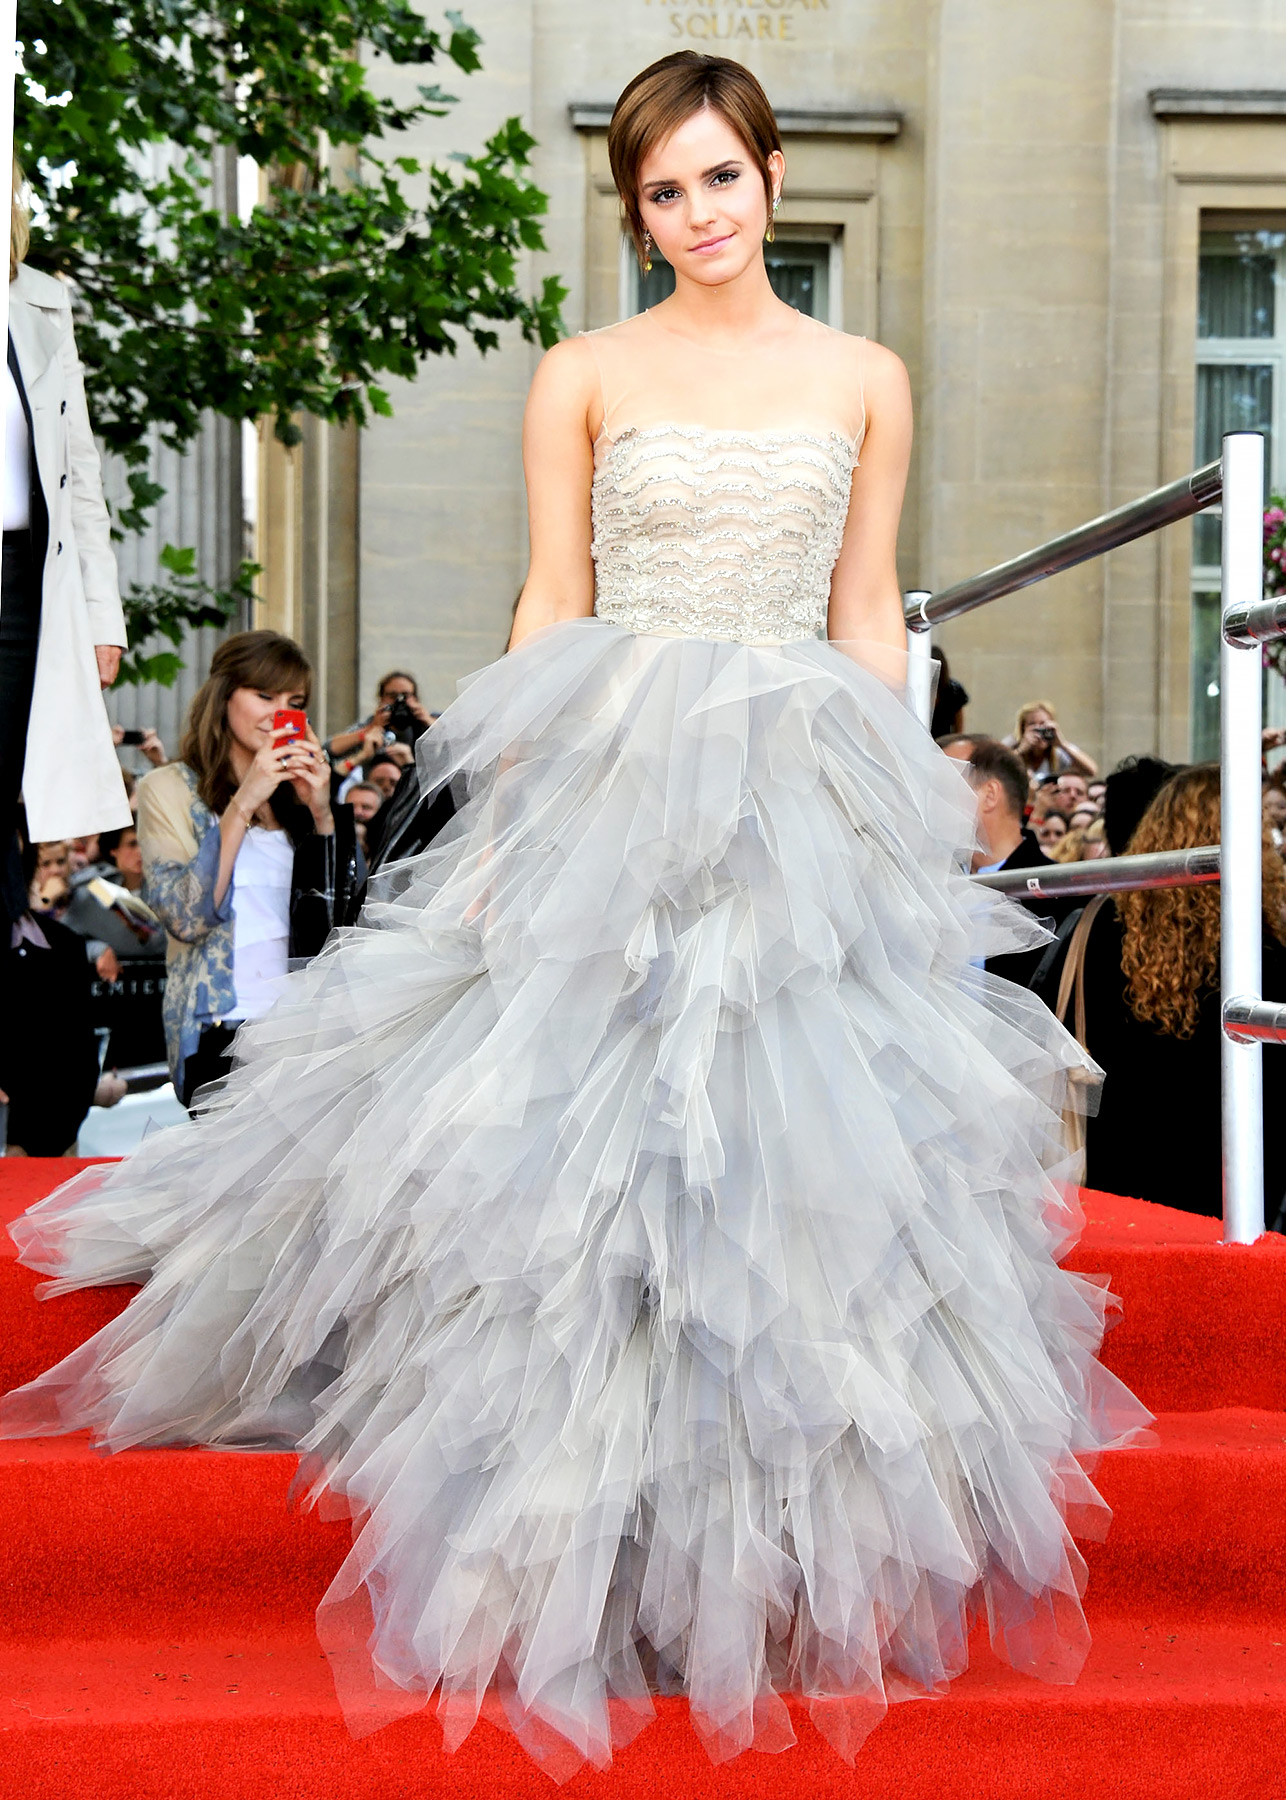 Emma Watson celebrated her final run as Hermione at the world premiere of Harry Potter and the Deathly Hallows: Part 2 in London . 21 years old at the time, Watson wore a stunning Oscar de la Renta dress for the occasion.